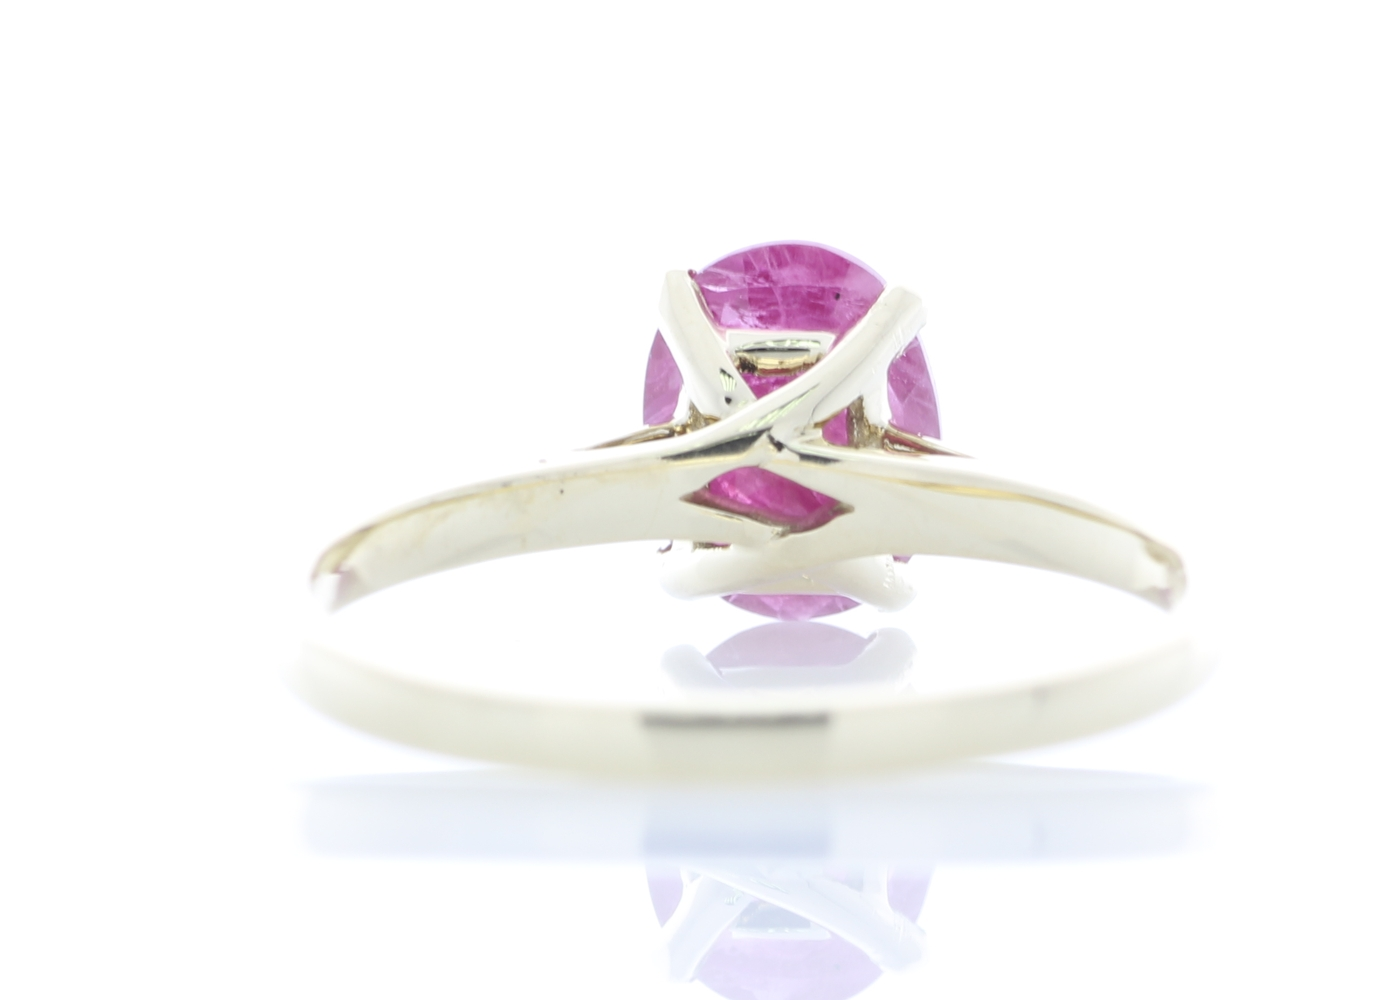 9ct Yellow Gold Oval Cut Ruby Ring 1.24 Carats - Image 3 of 4